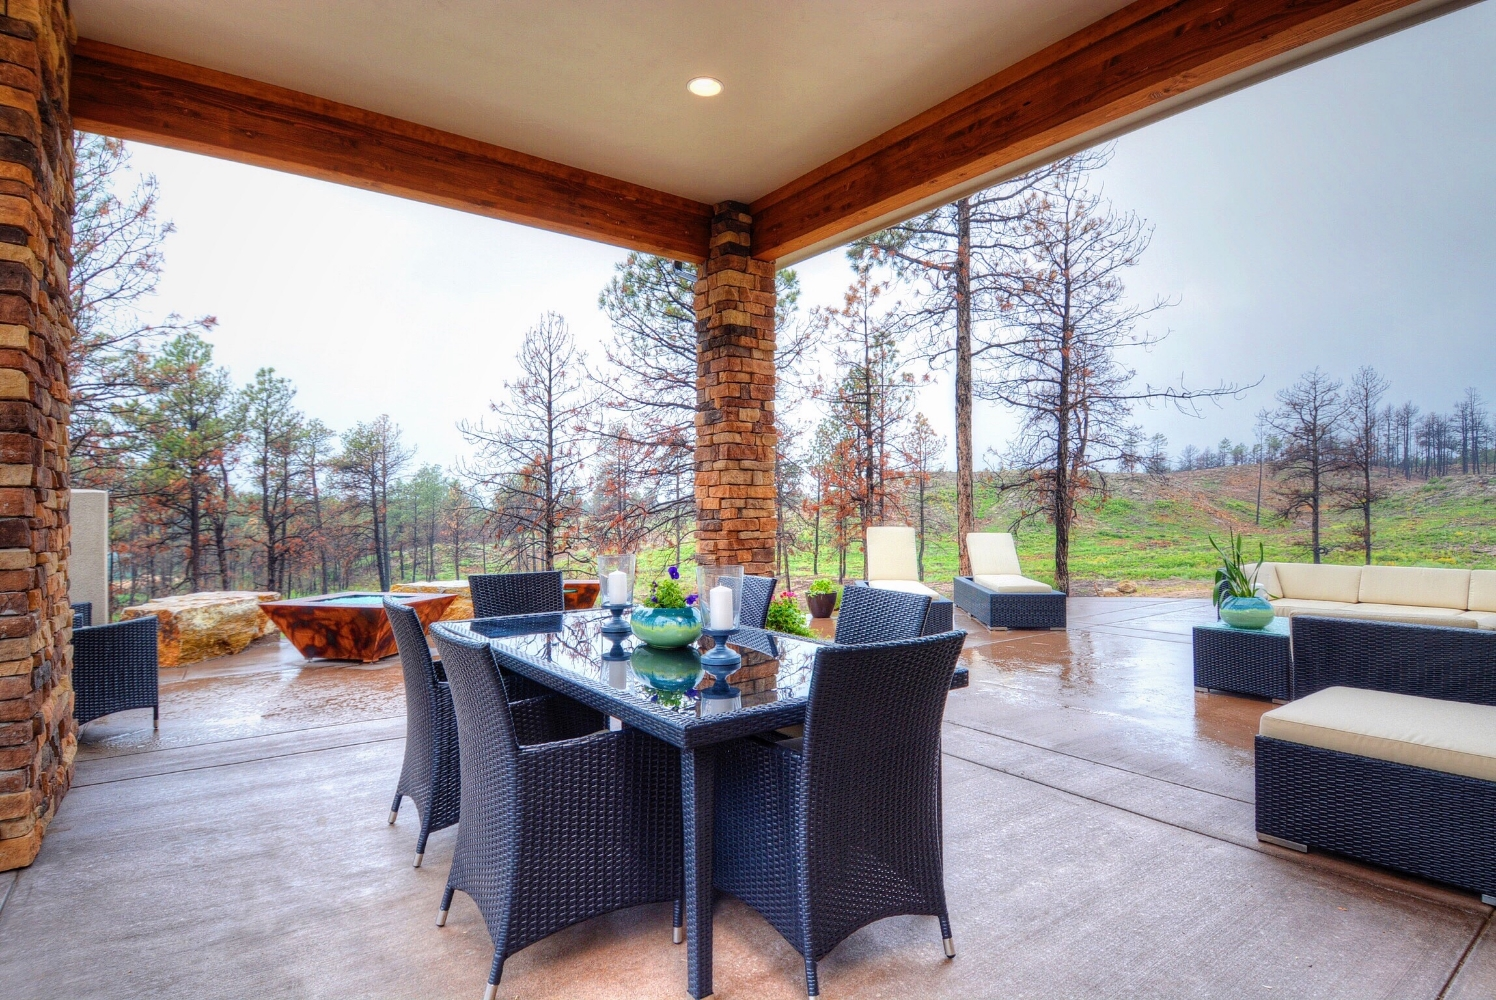 LGA_Studios_Portfolio_Black_Forest_Craftsman_Outdoor_Living.jpg